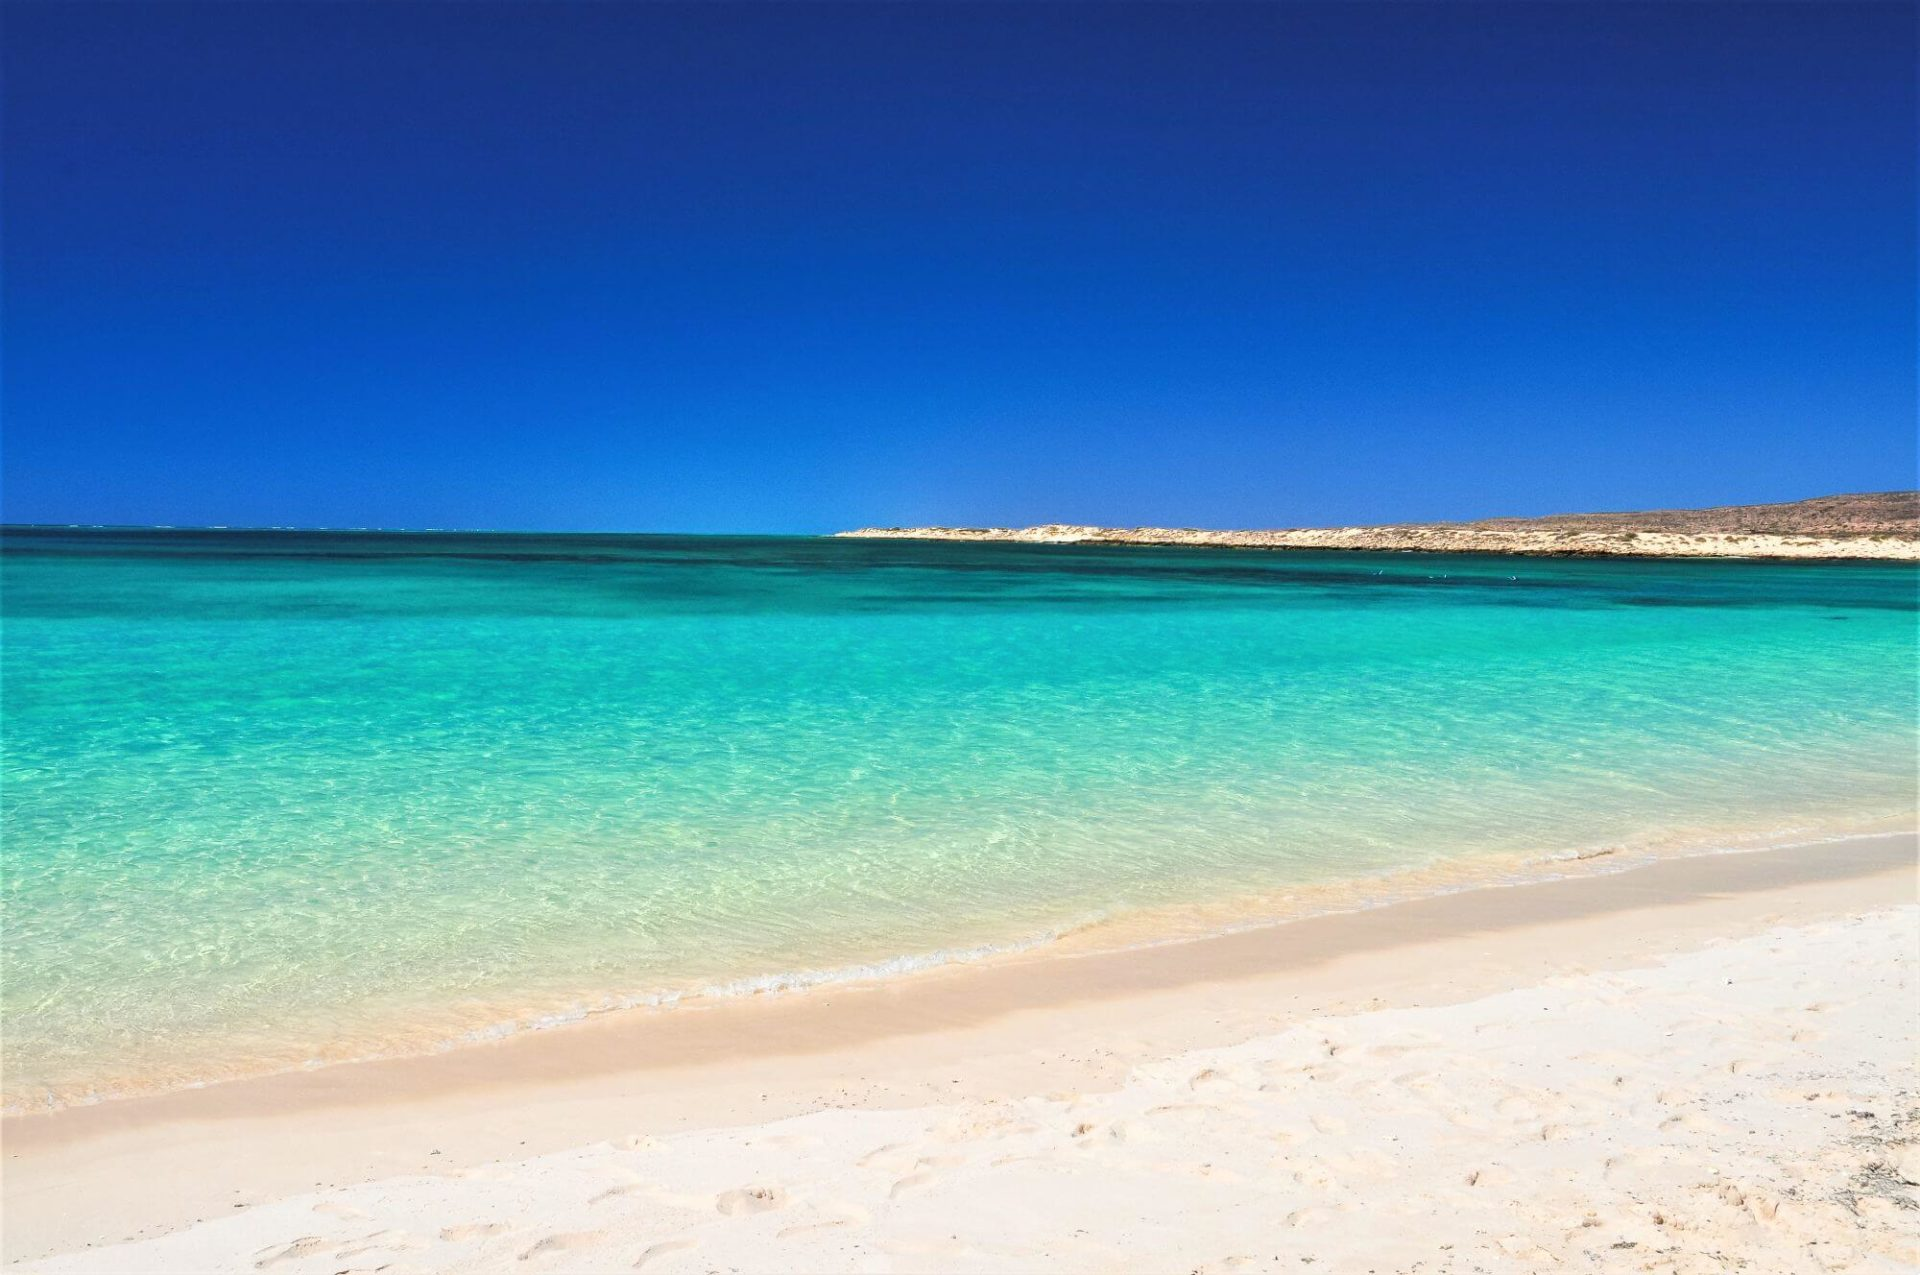 Turquoise Bay im Cape Range National Park am Ningaloo Reef